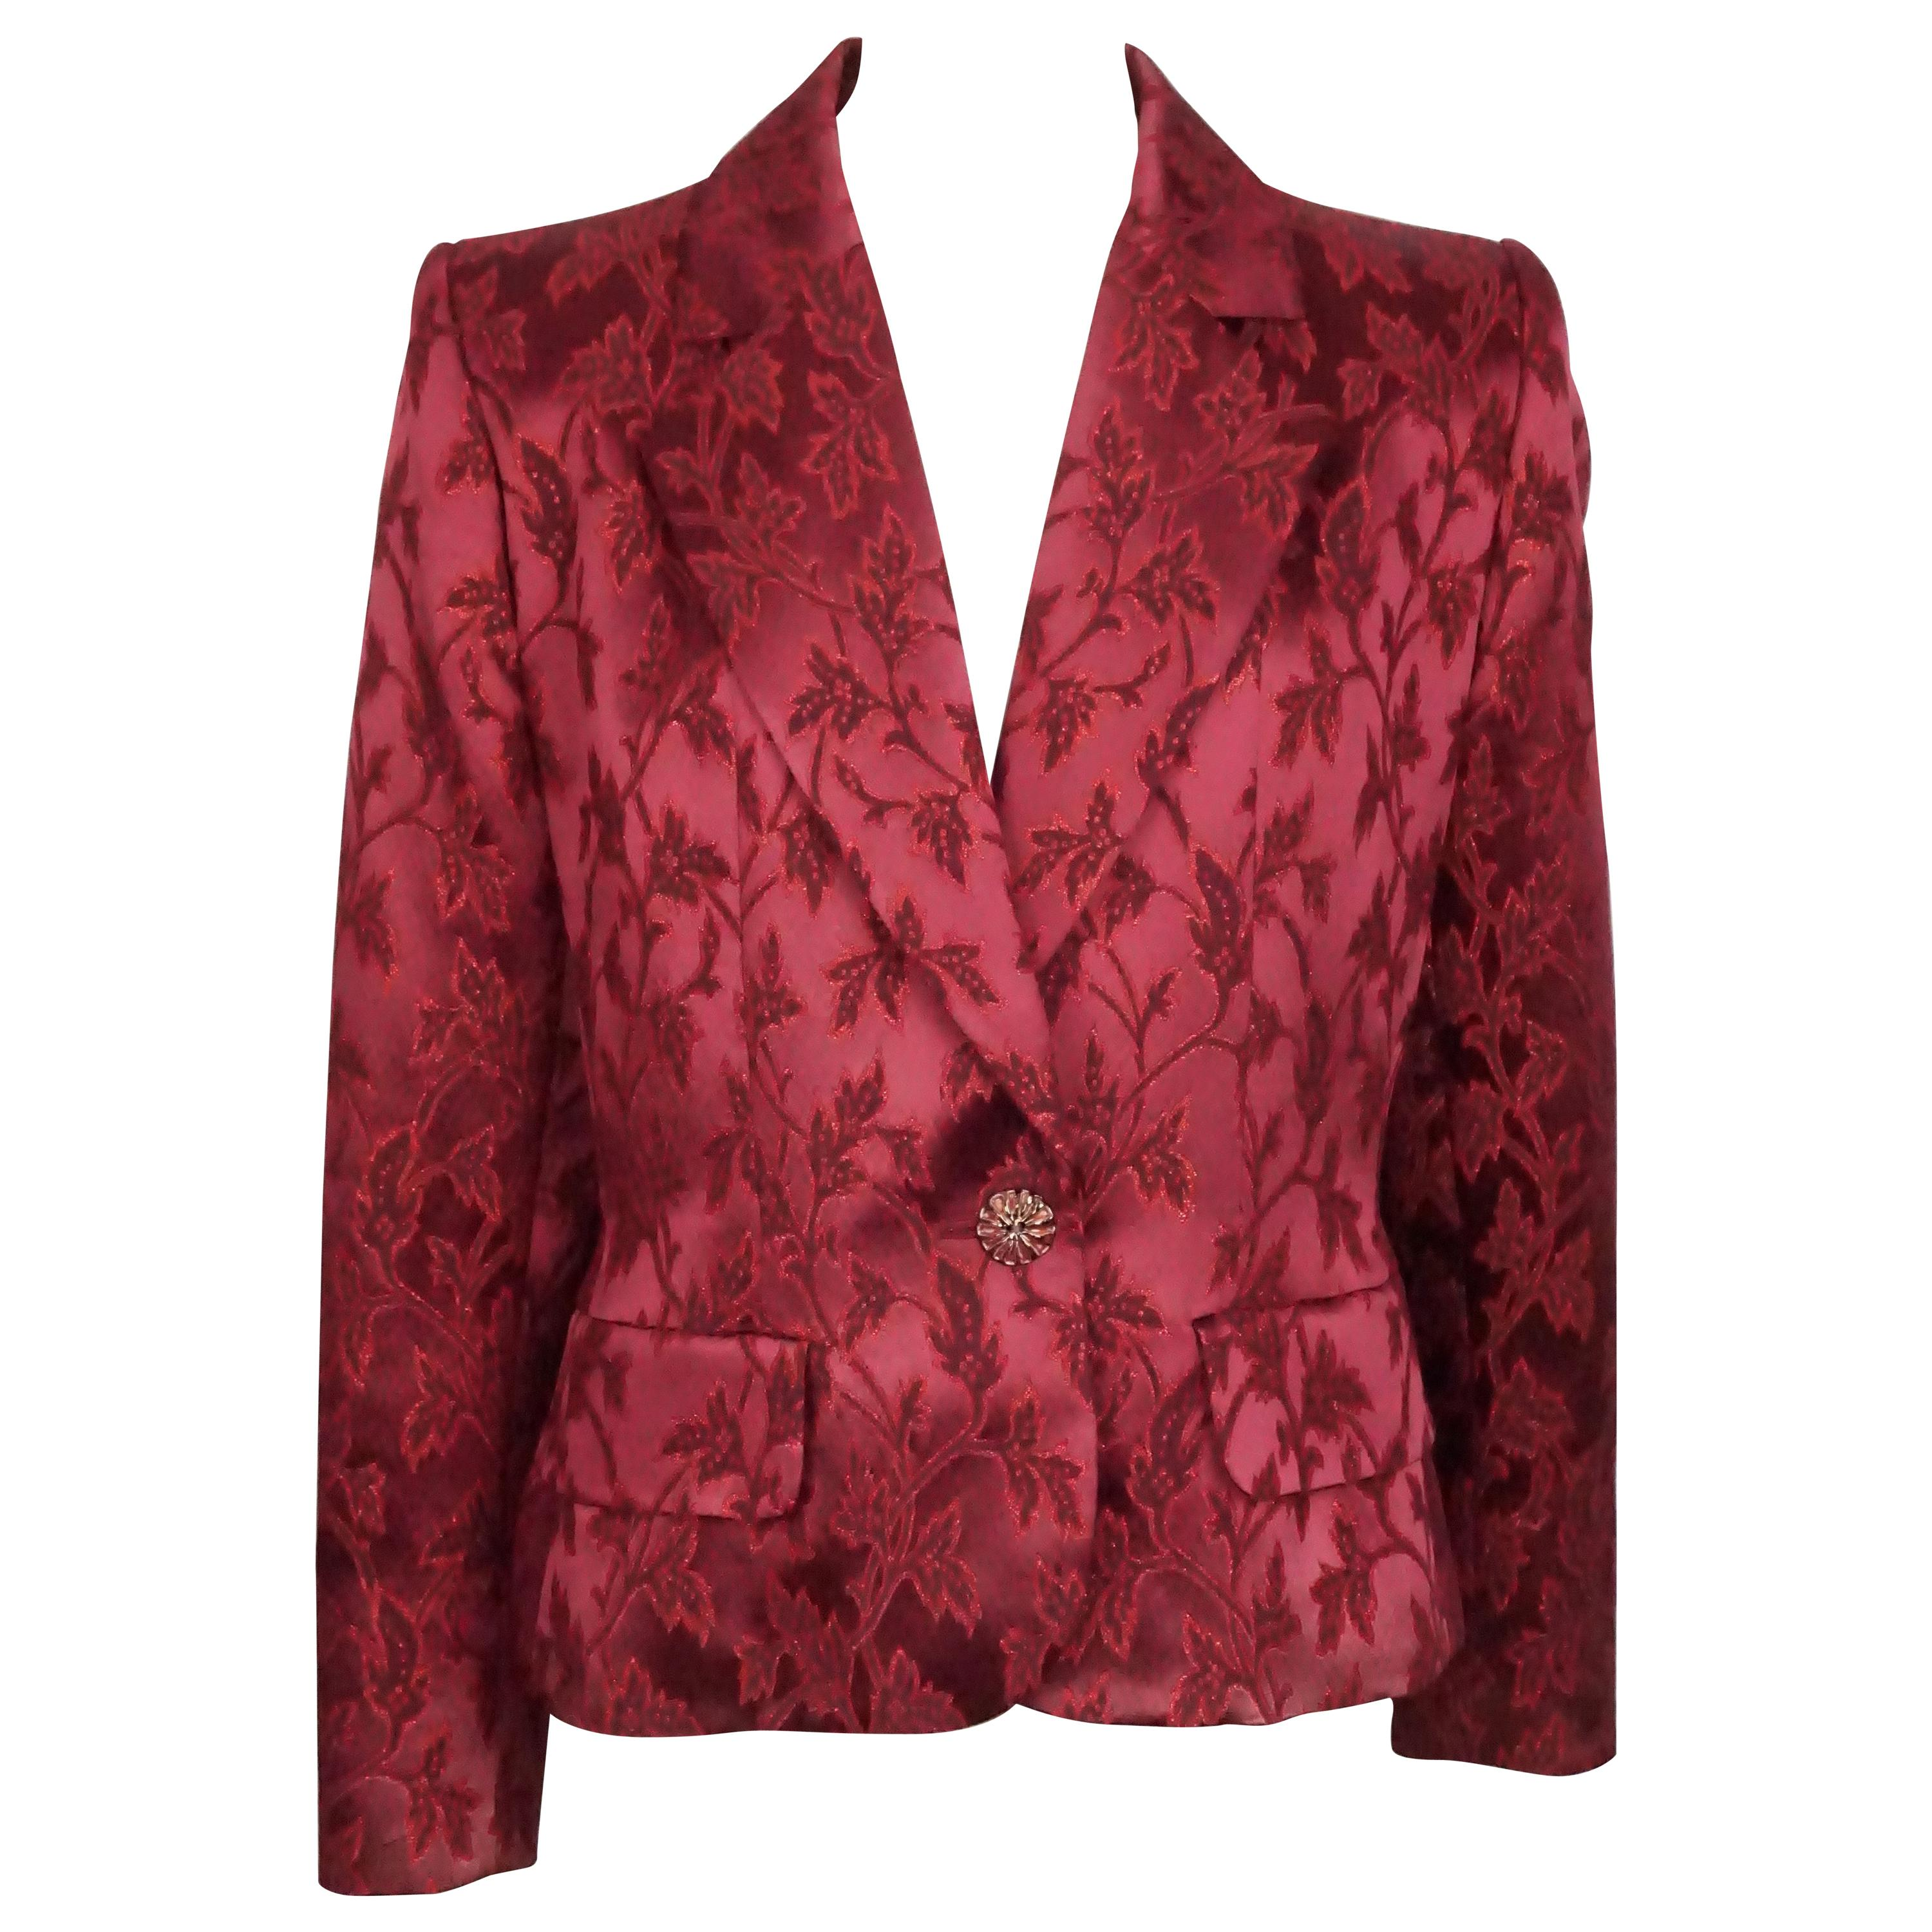 ced4a21e028 Silk Jackets - 1605 For Sale on 1stdibs